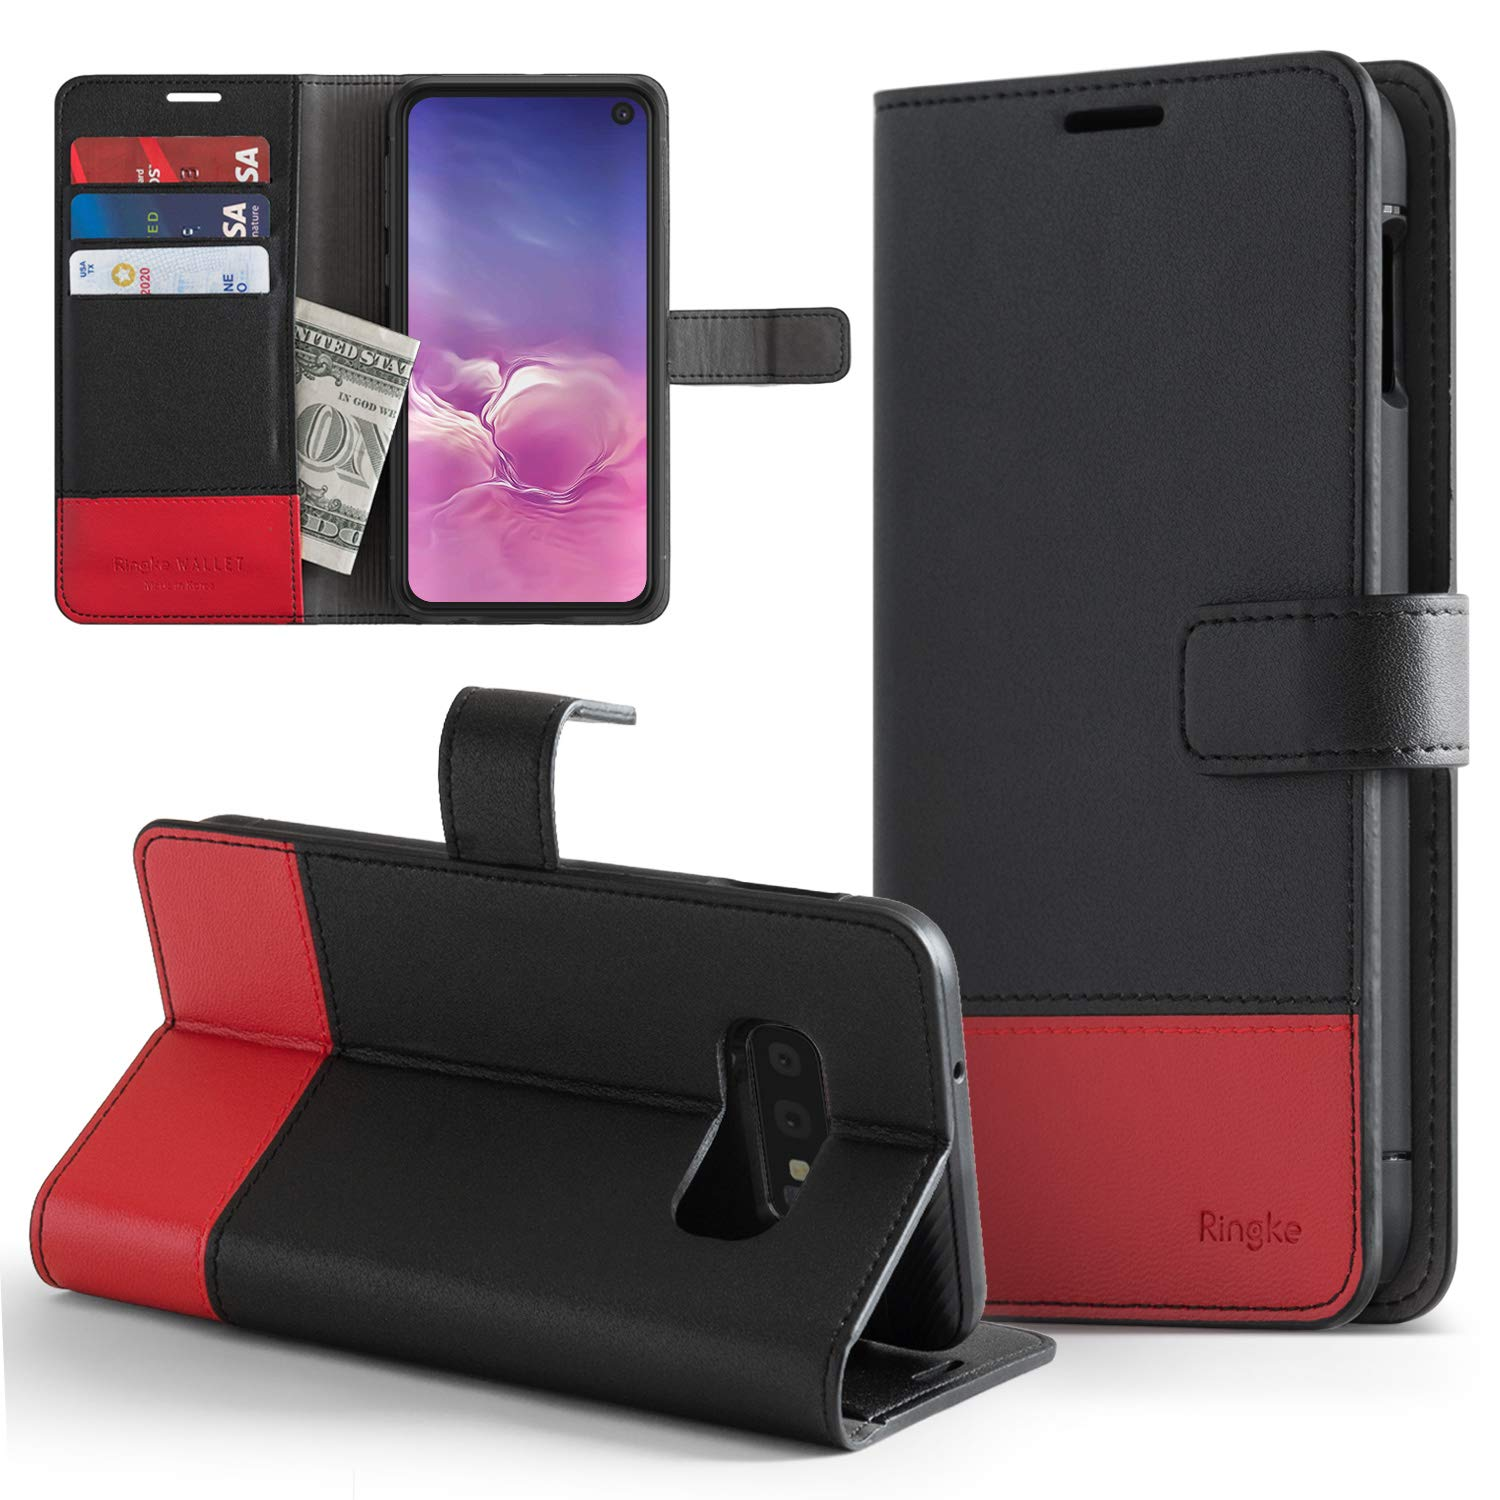 ringke wallet designed for samsung galaxy s10e black and red